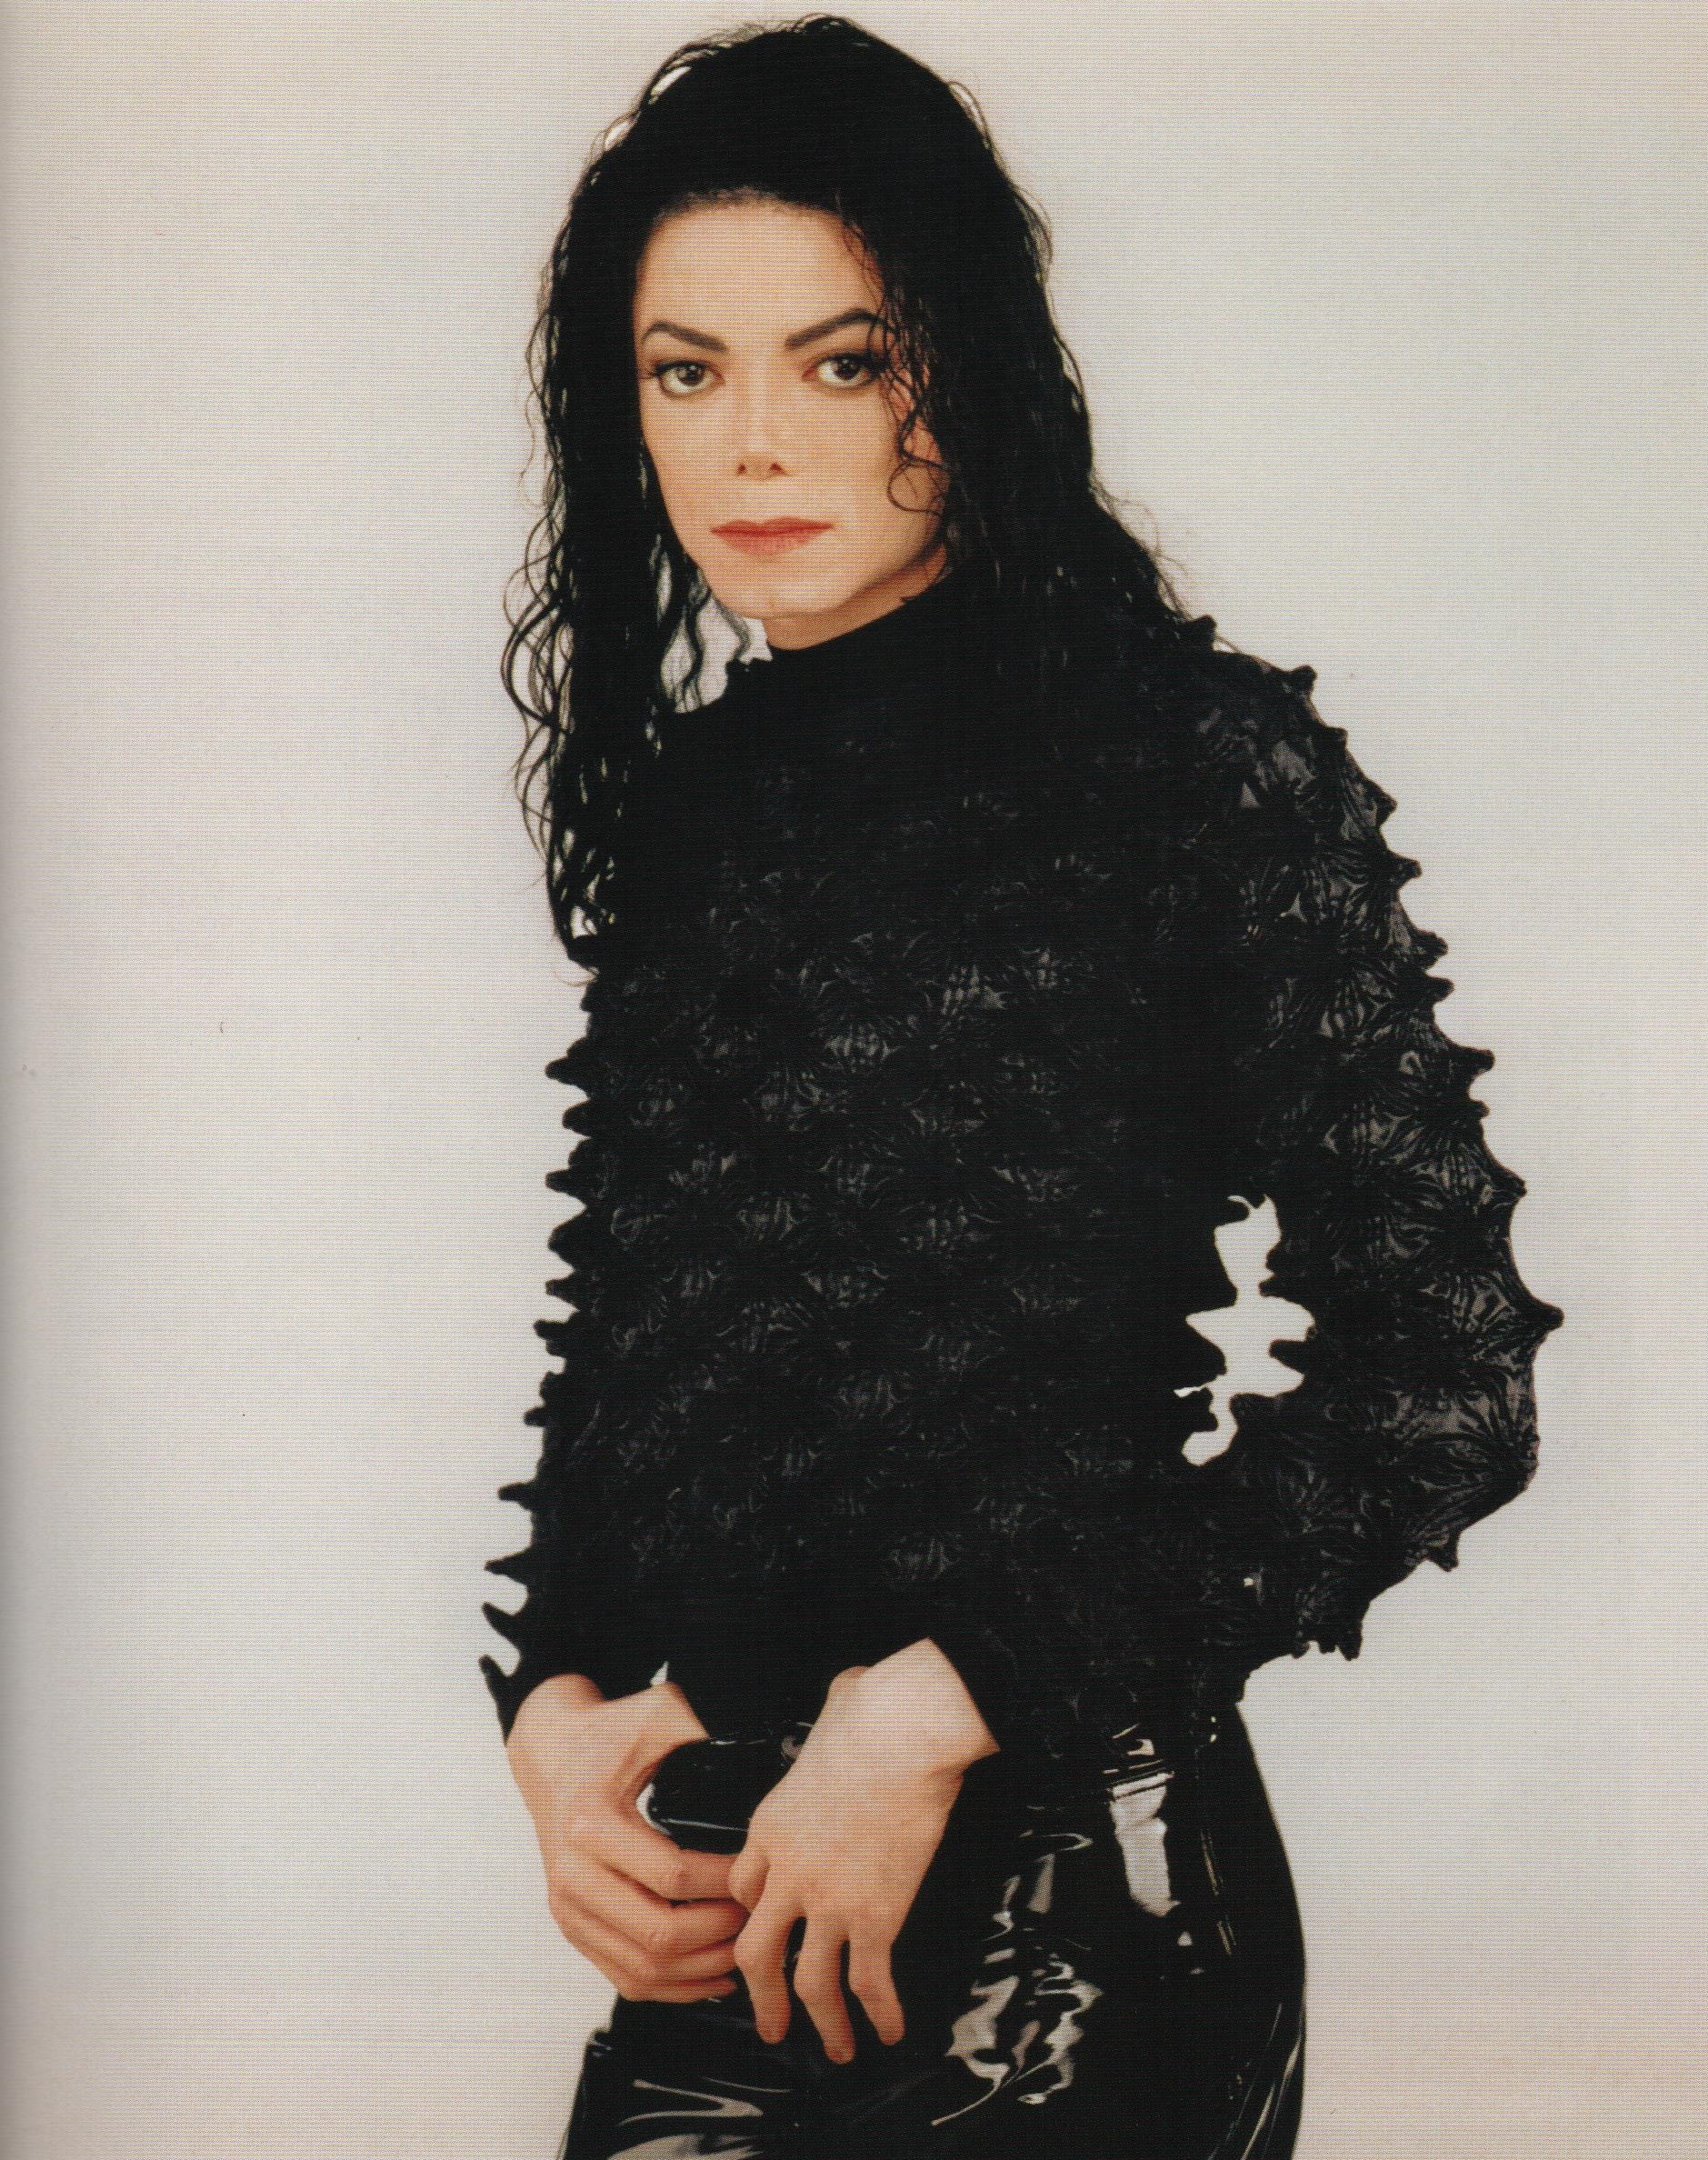 Michael Jackson HQ Scan: Scream Short Film